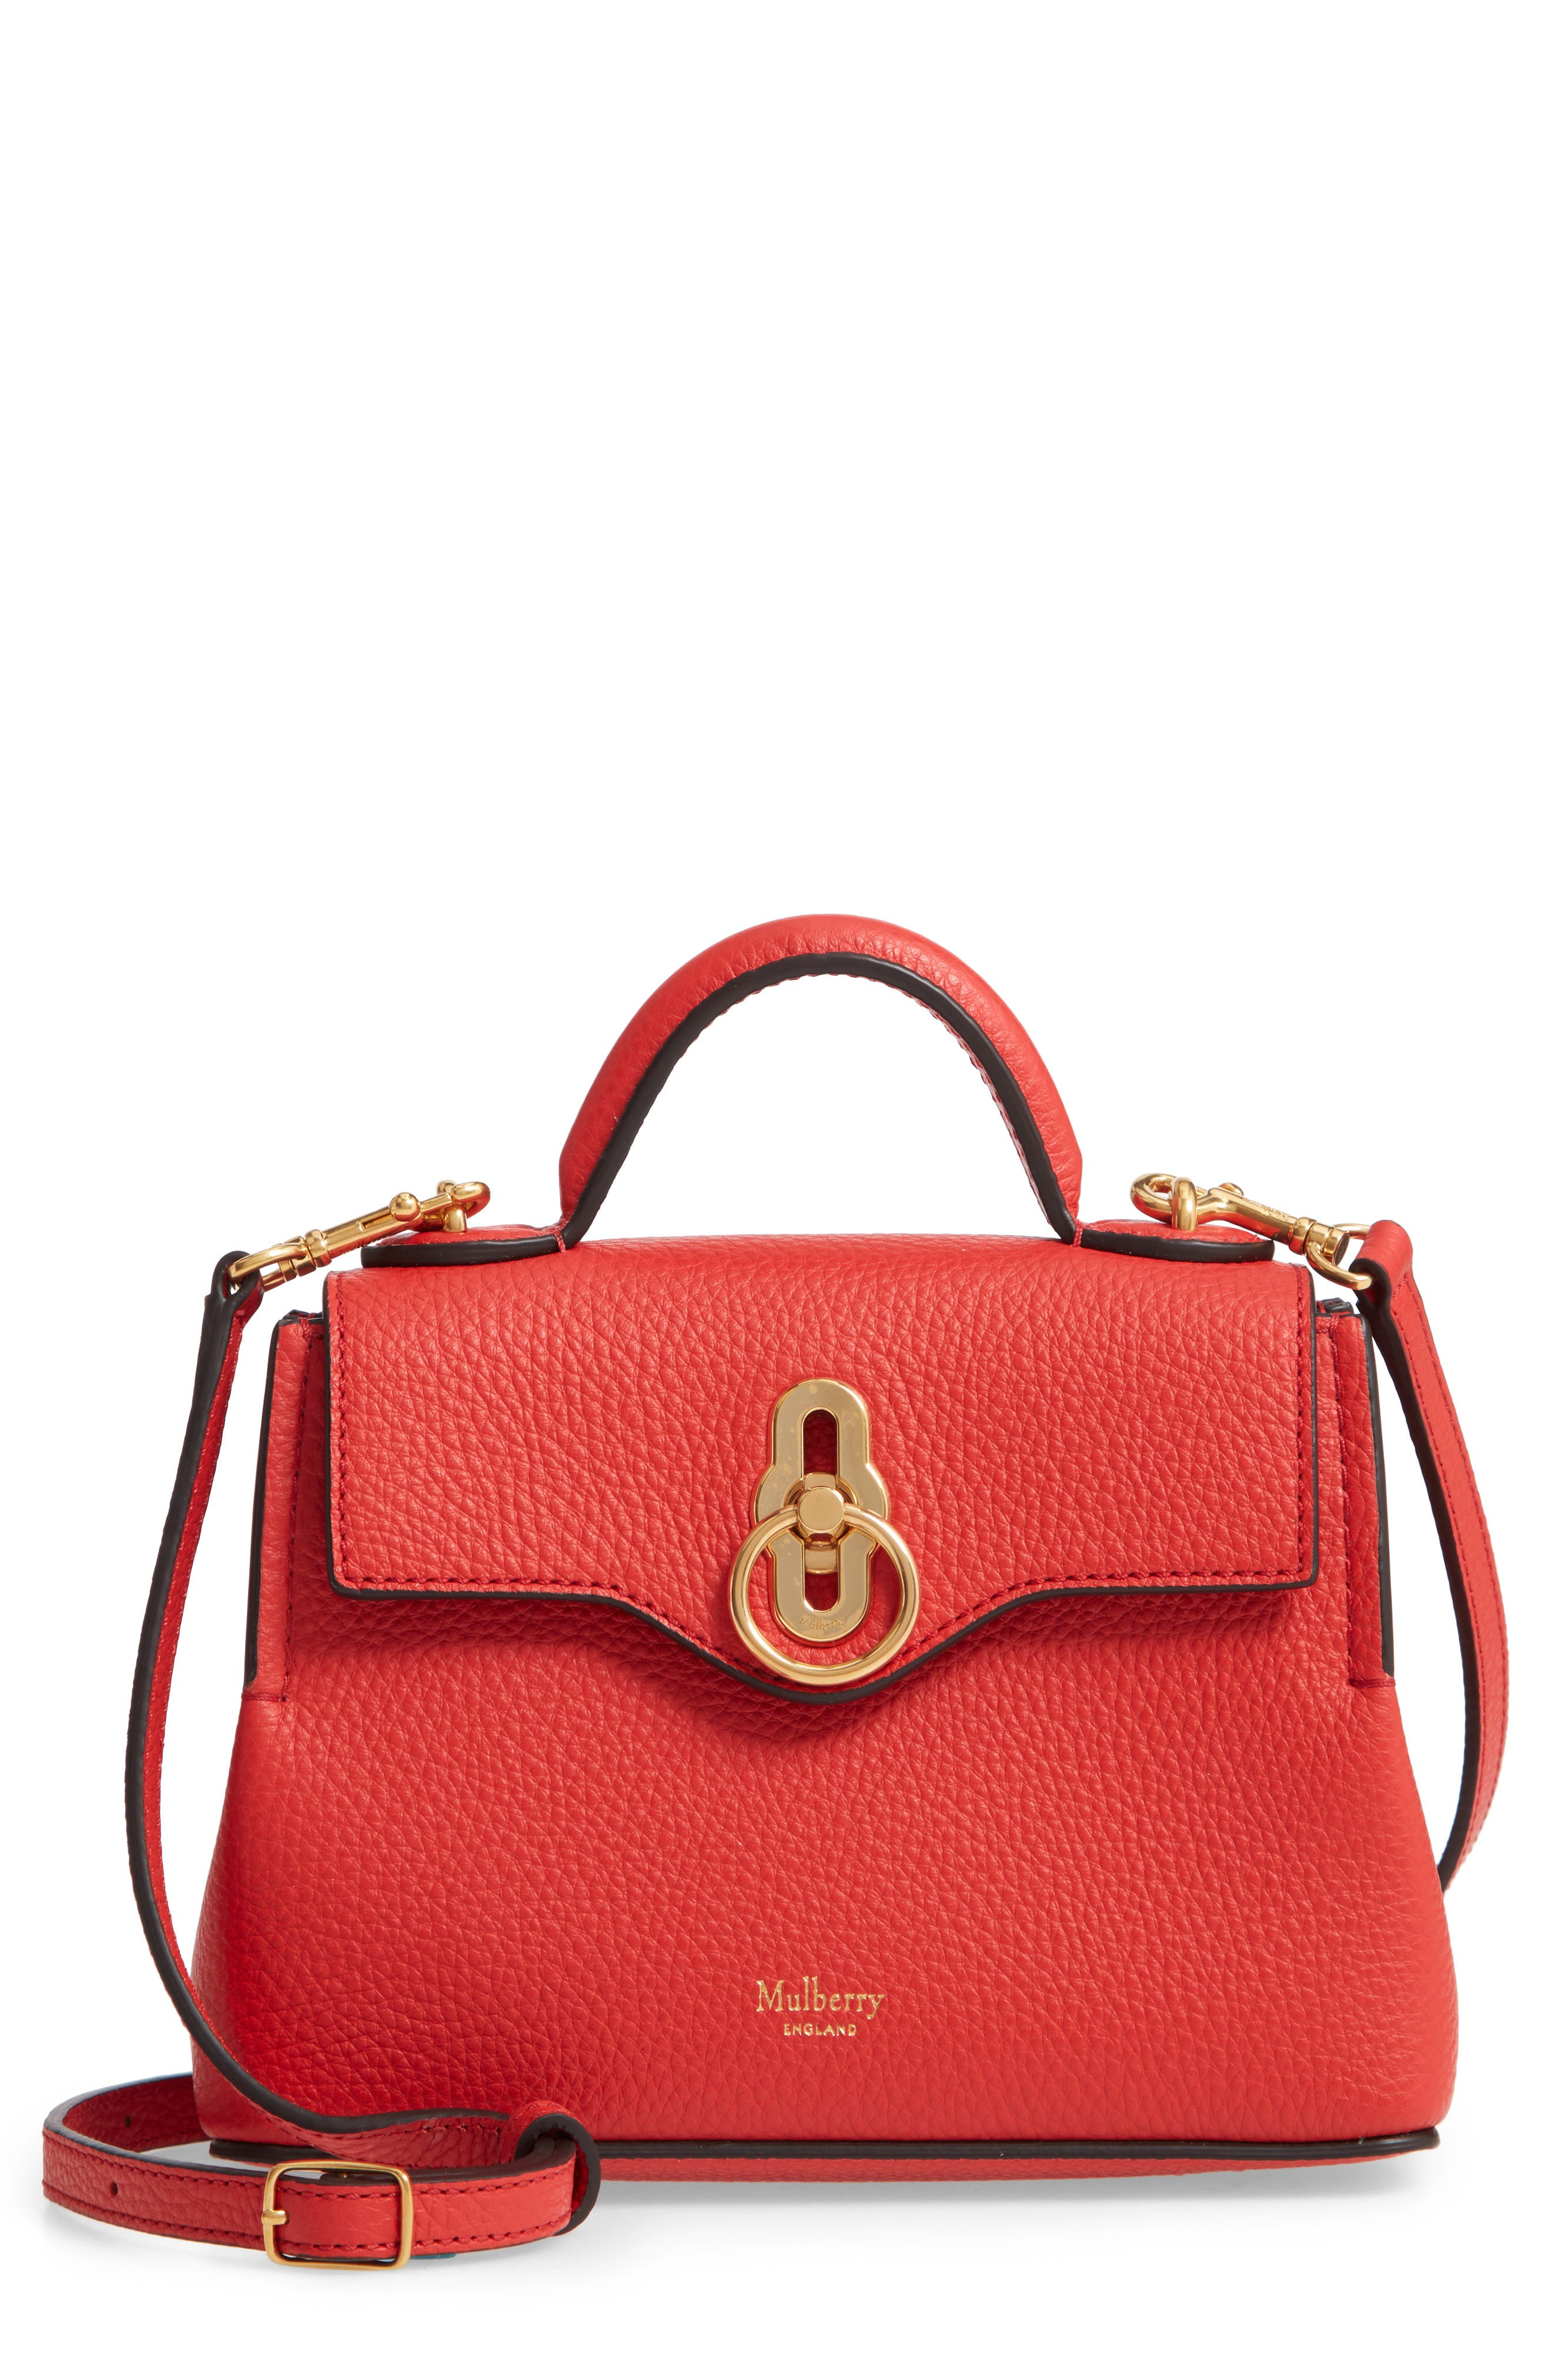 MULBERRY Micro Seaton Leather Convertible Crossbody Bag, Main, color, HIBISCUS RED